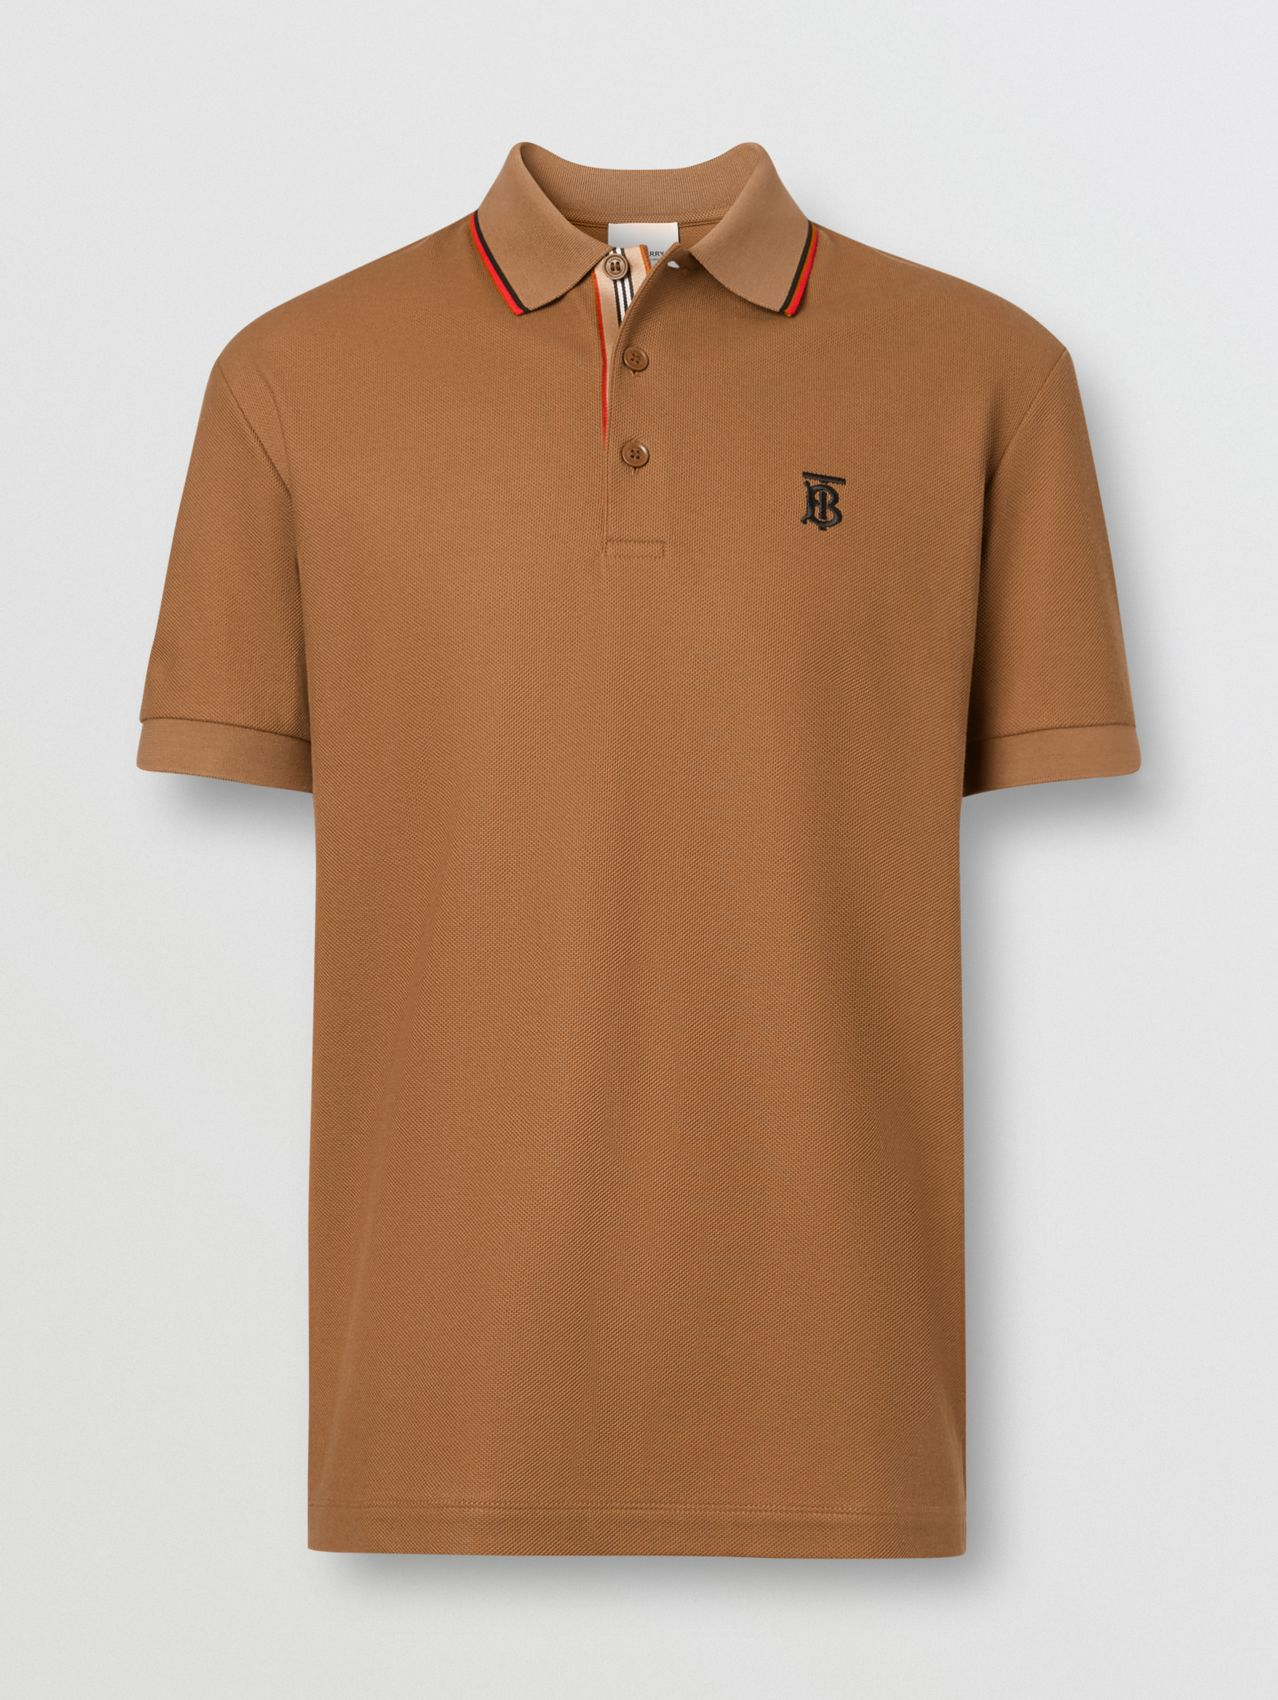 Monogram Motif Cotton Piqué Polo Shirt in Warm Brown